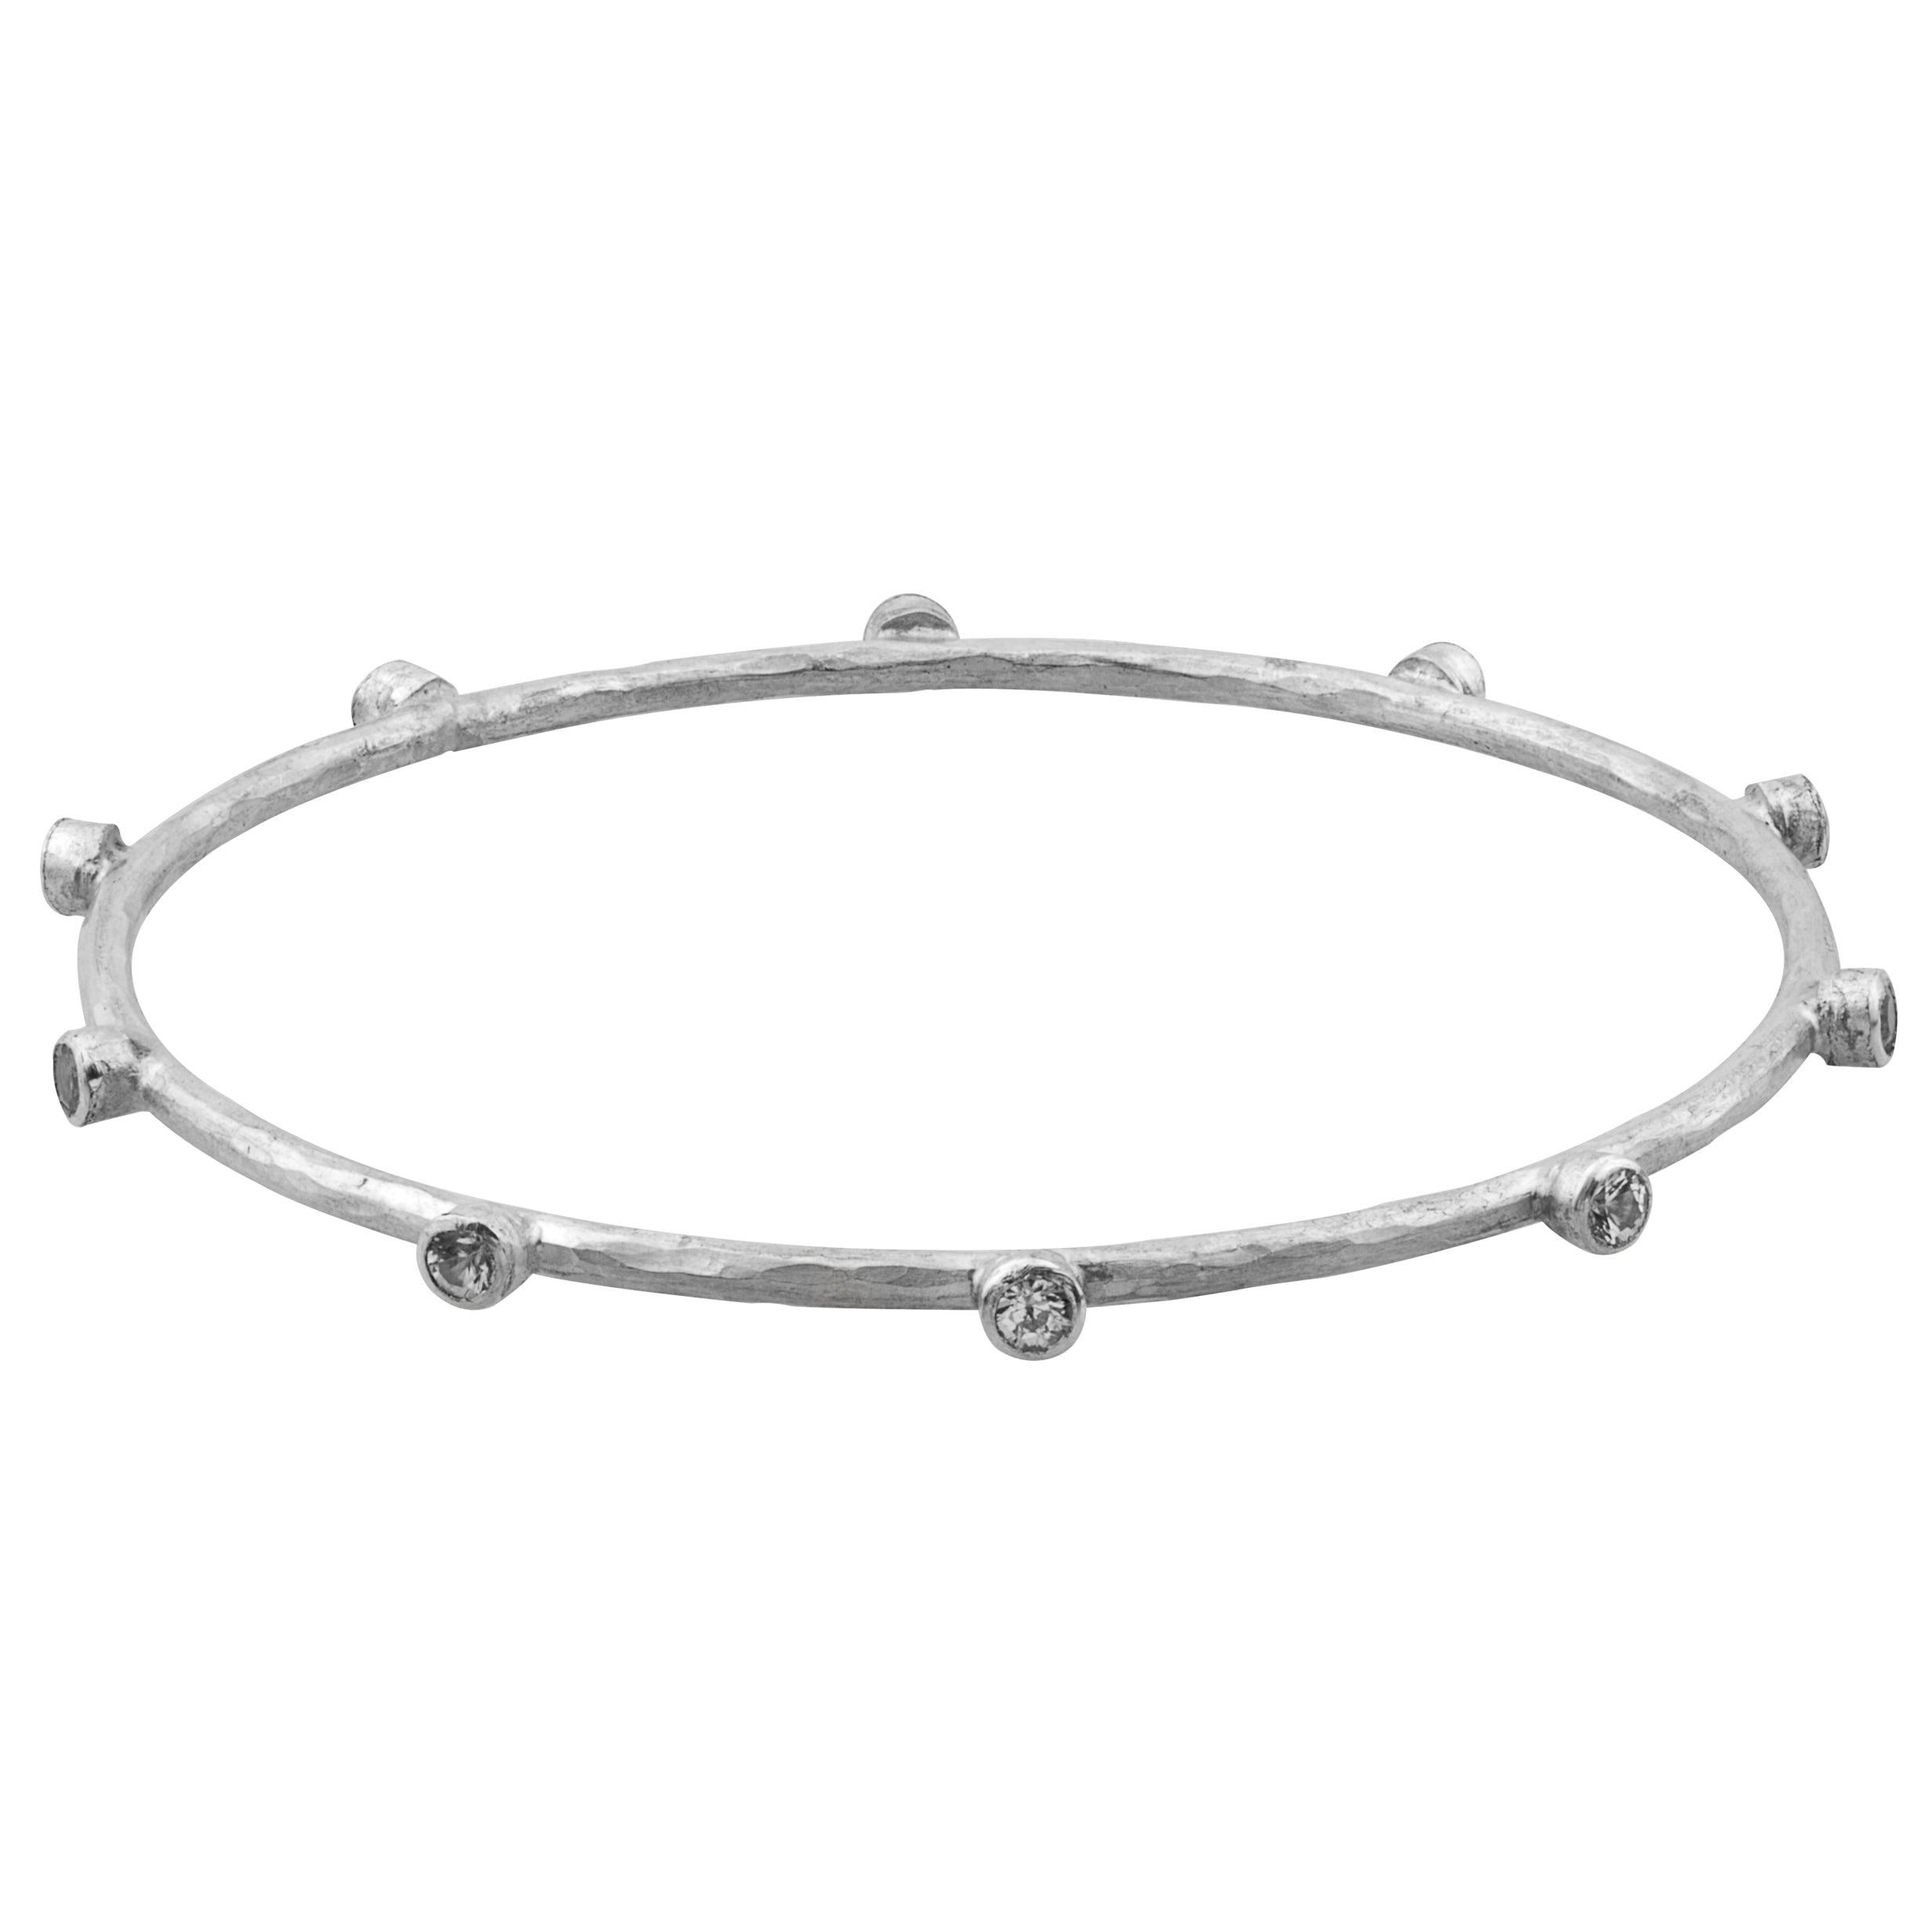 Lika Behar Silver Bangle Bracelet with 10 White Sapphires